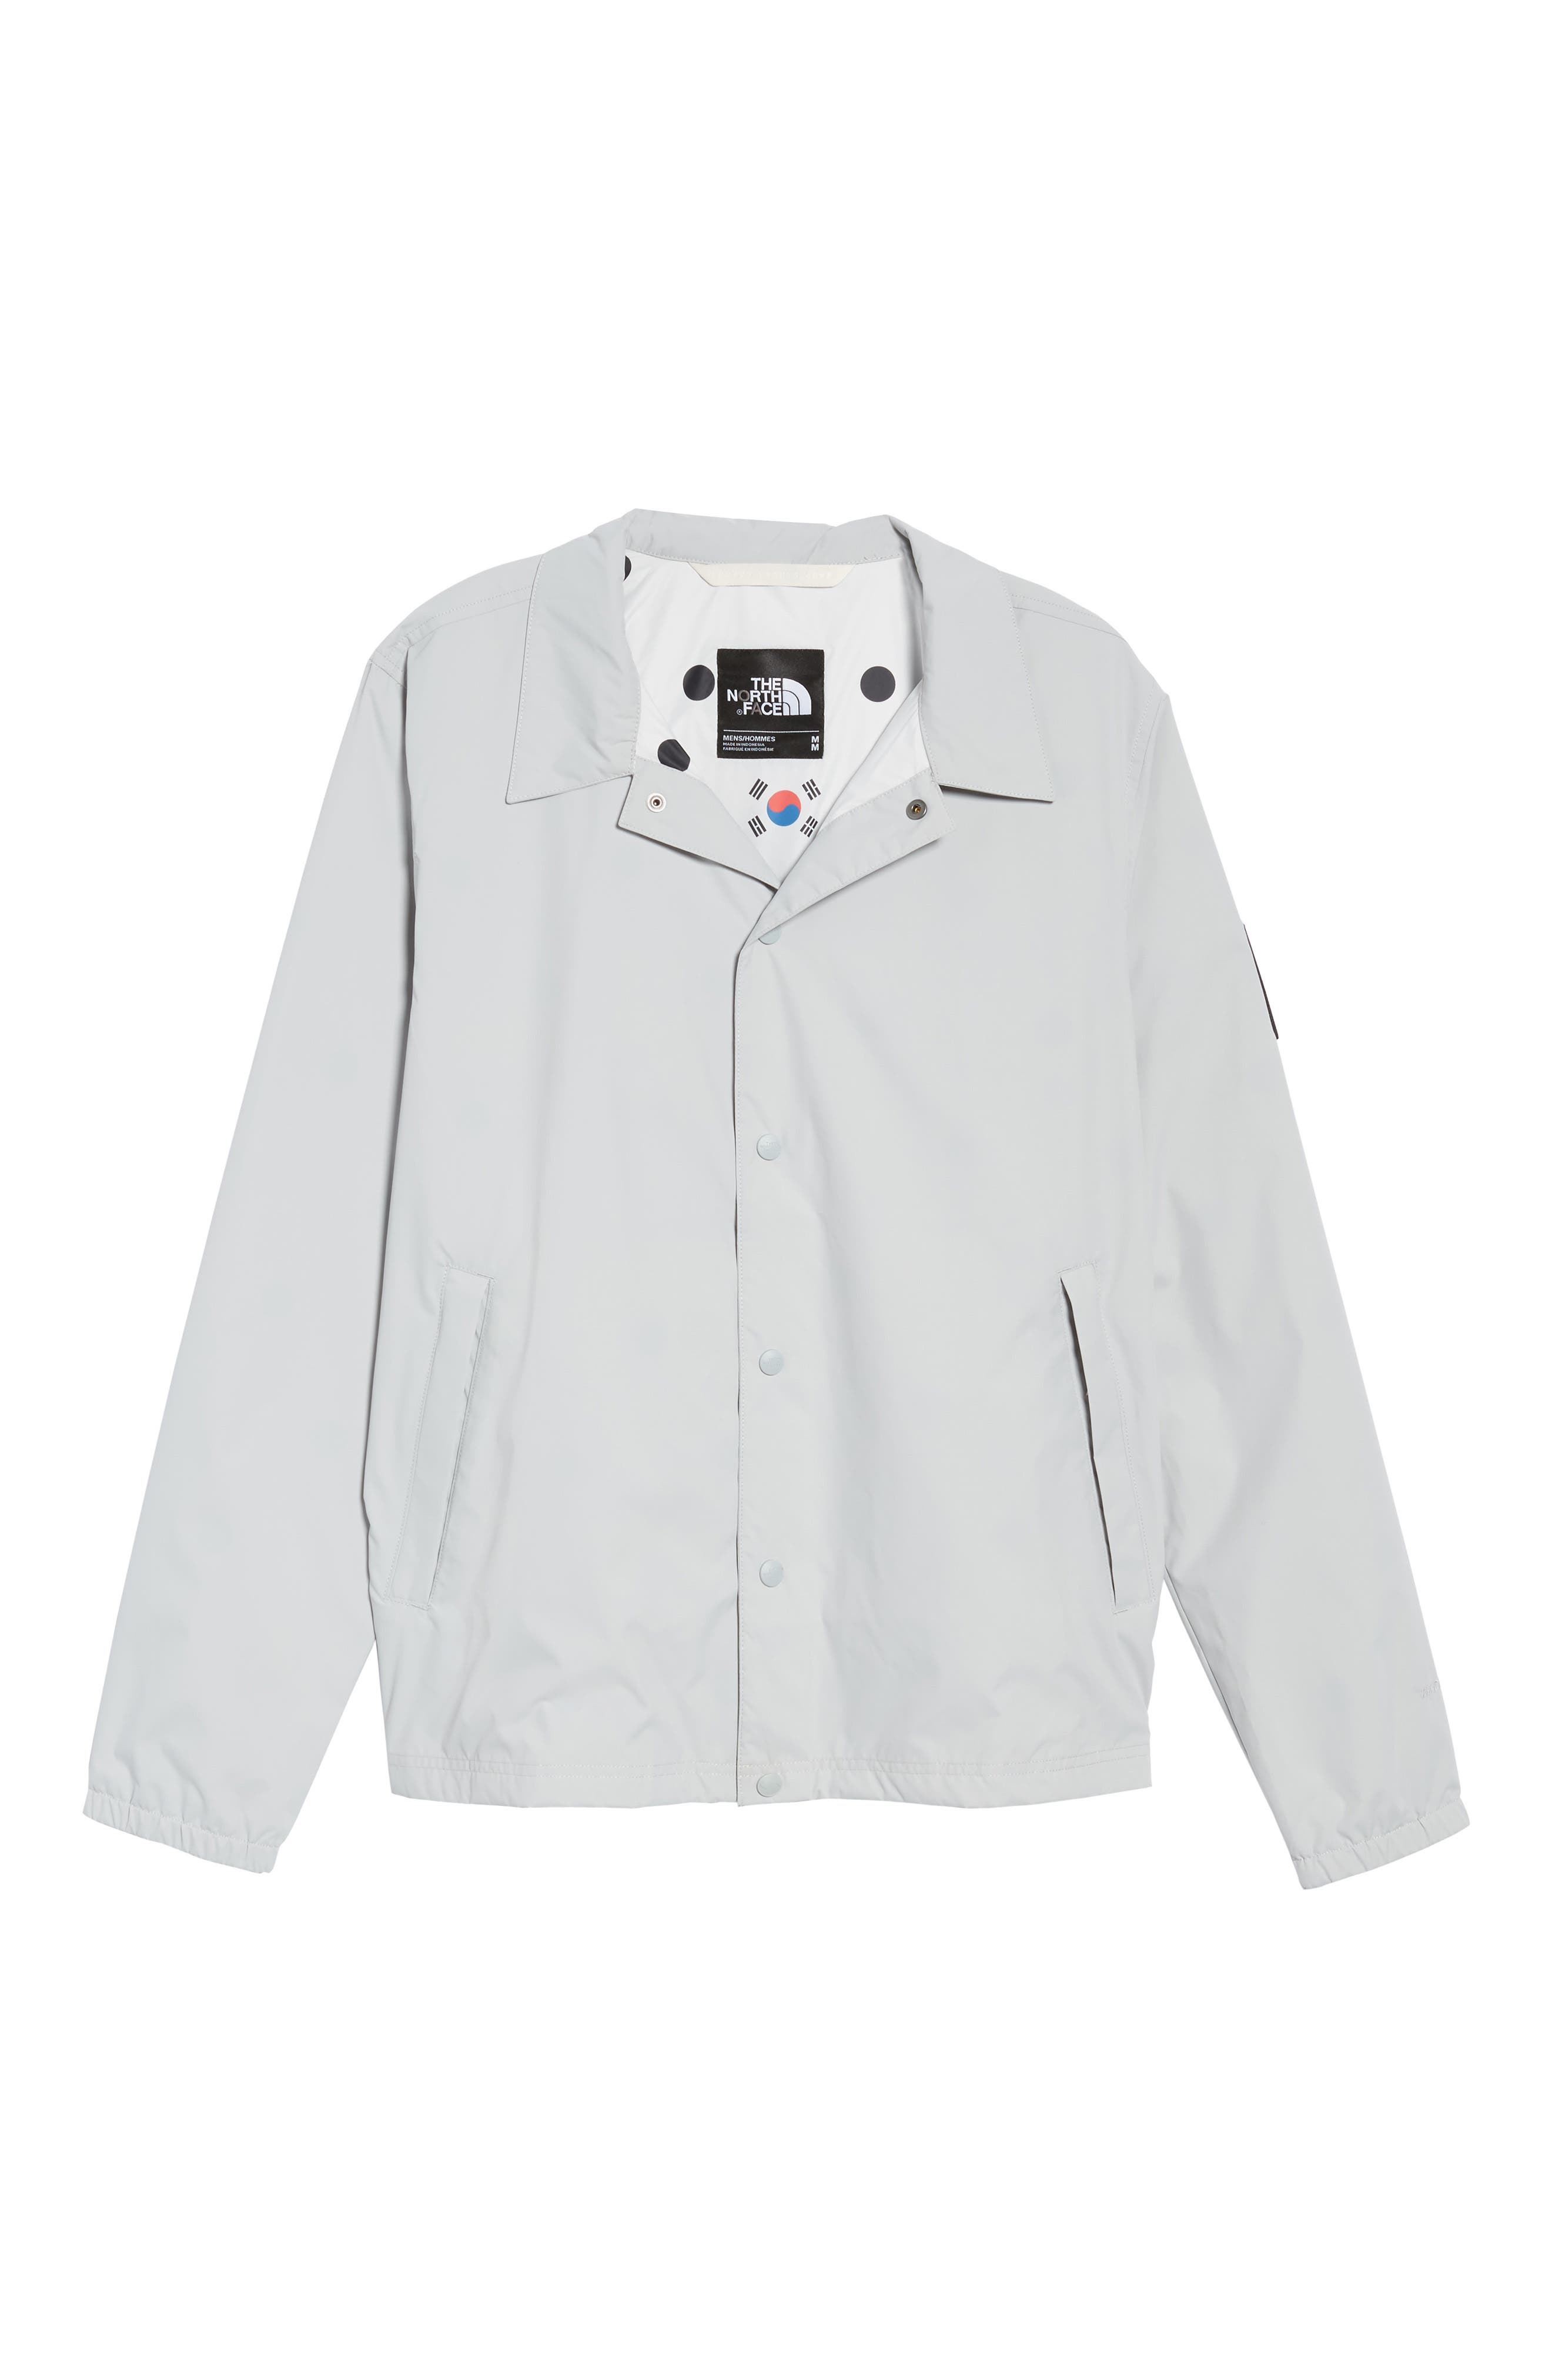 International Collection Coach Jacket,                             Alternate thumbnail 6, color,                             High Rise Grey